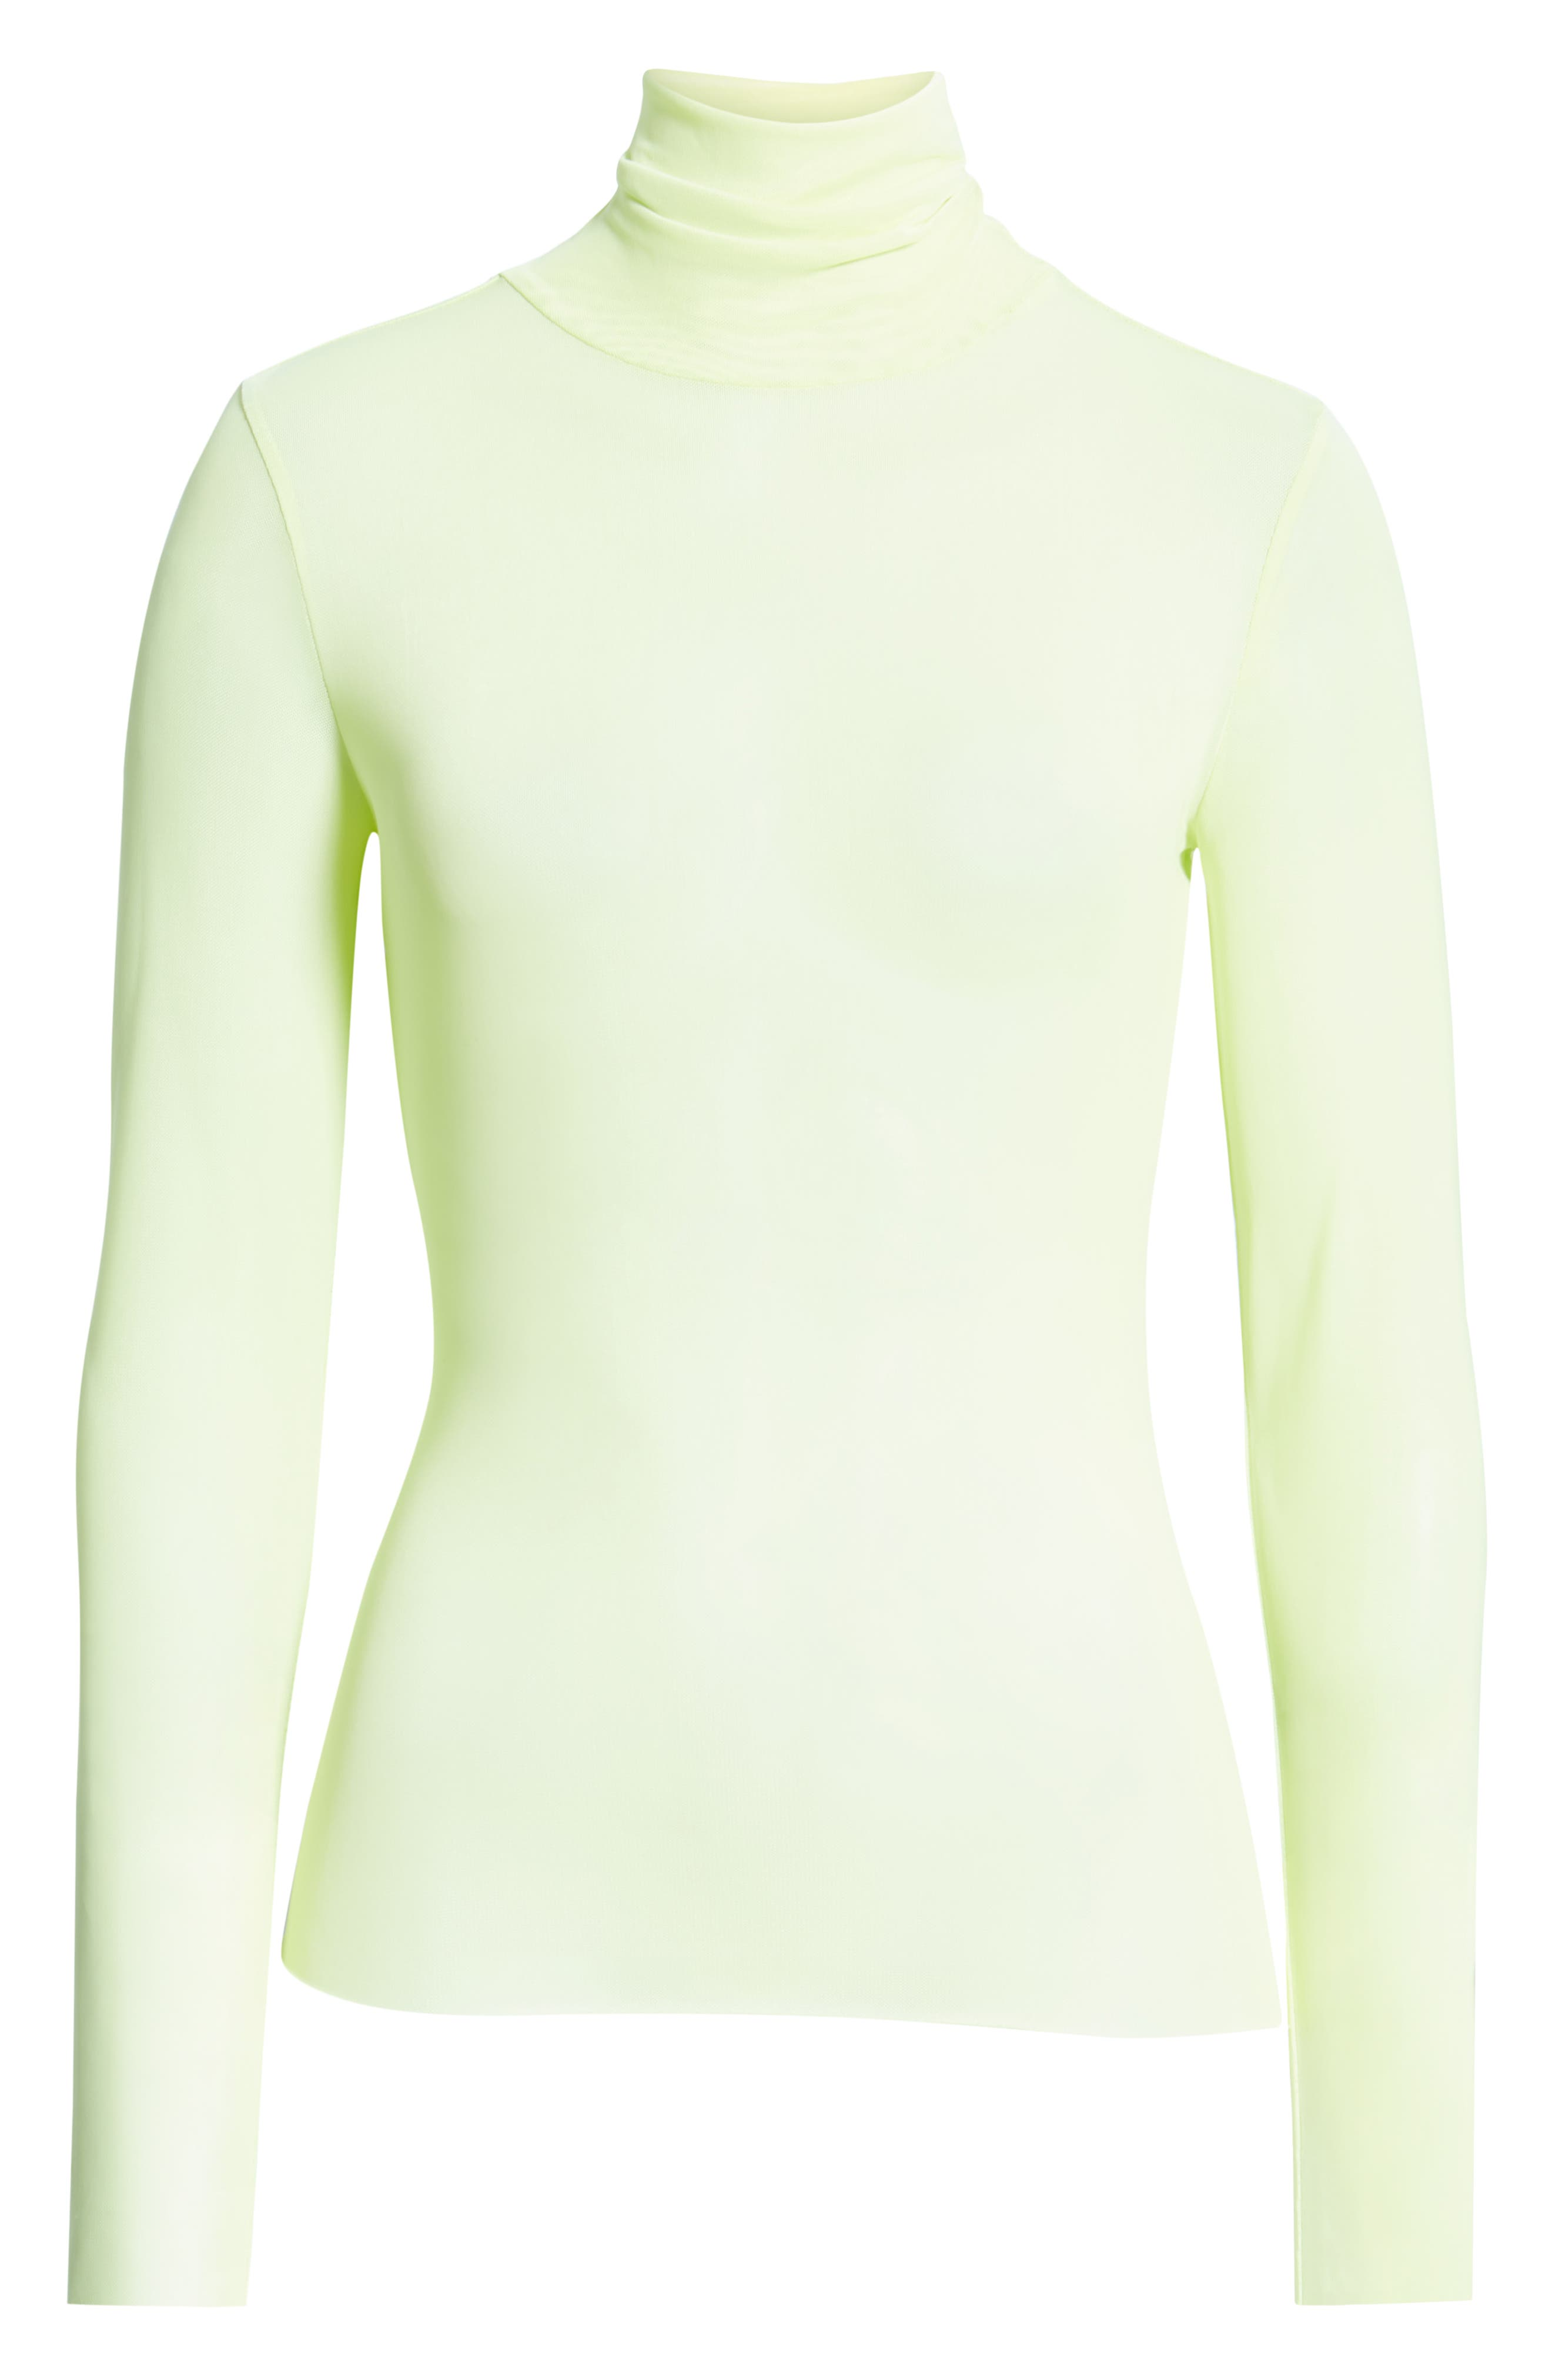 Zadie Semi Sheer Turtleneck,                             Alternate thumbnail 6, color,                             320